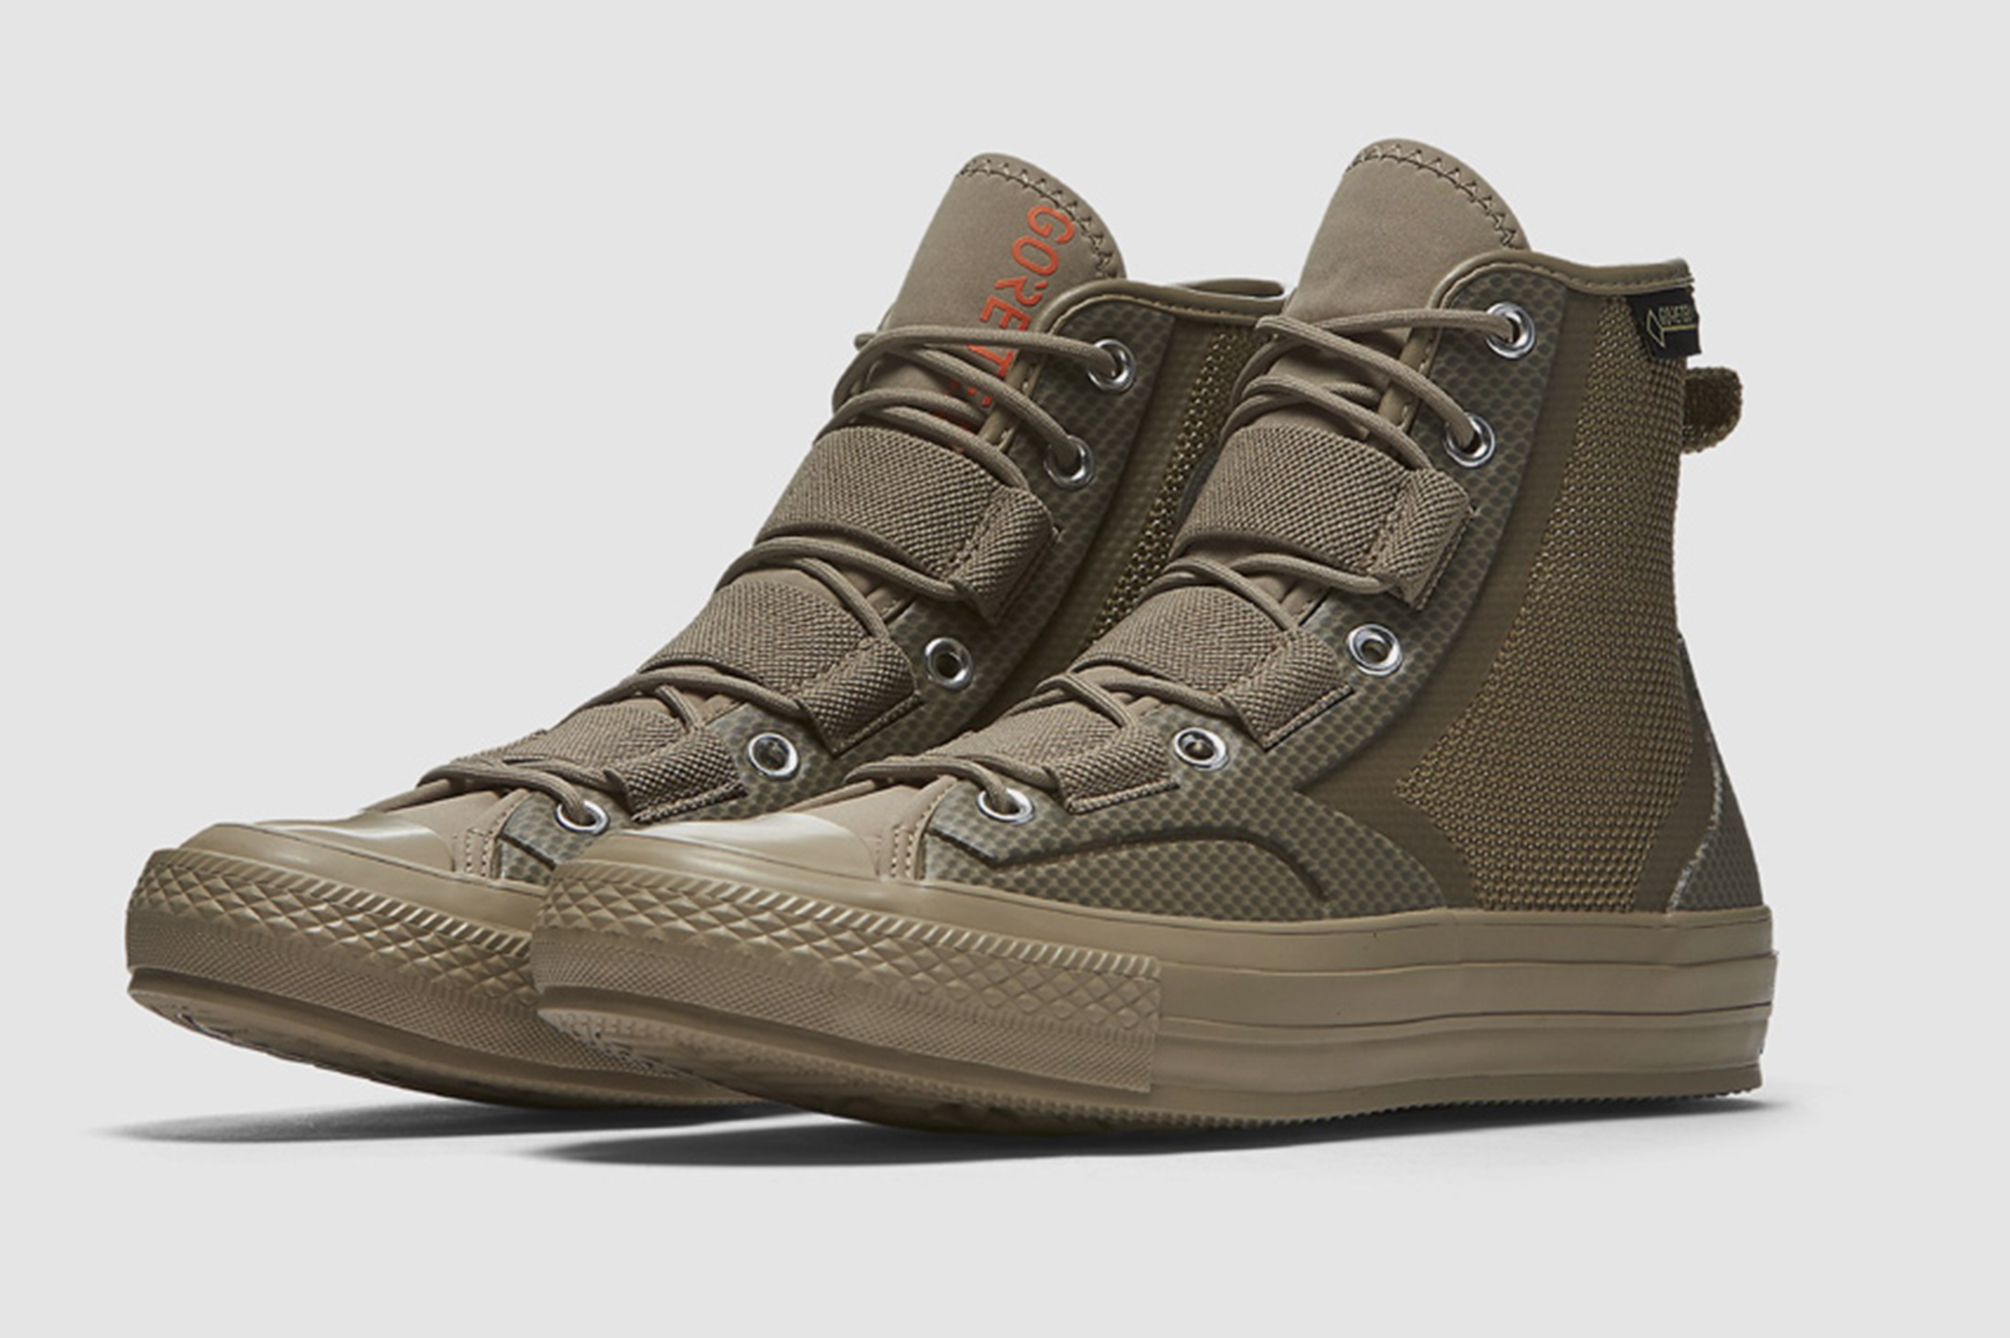 0db81592c3dd Converse Goes Tactical With The Urban Utility Collection